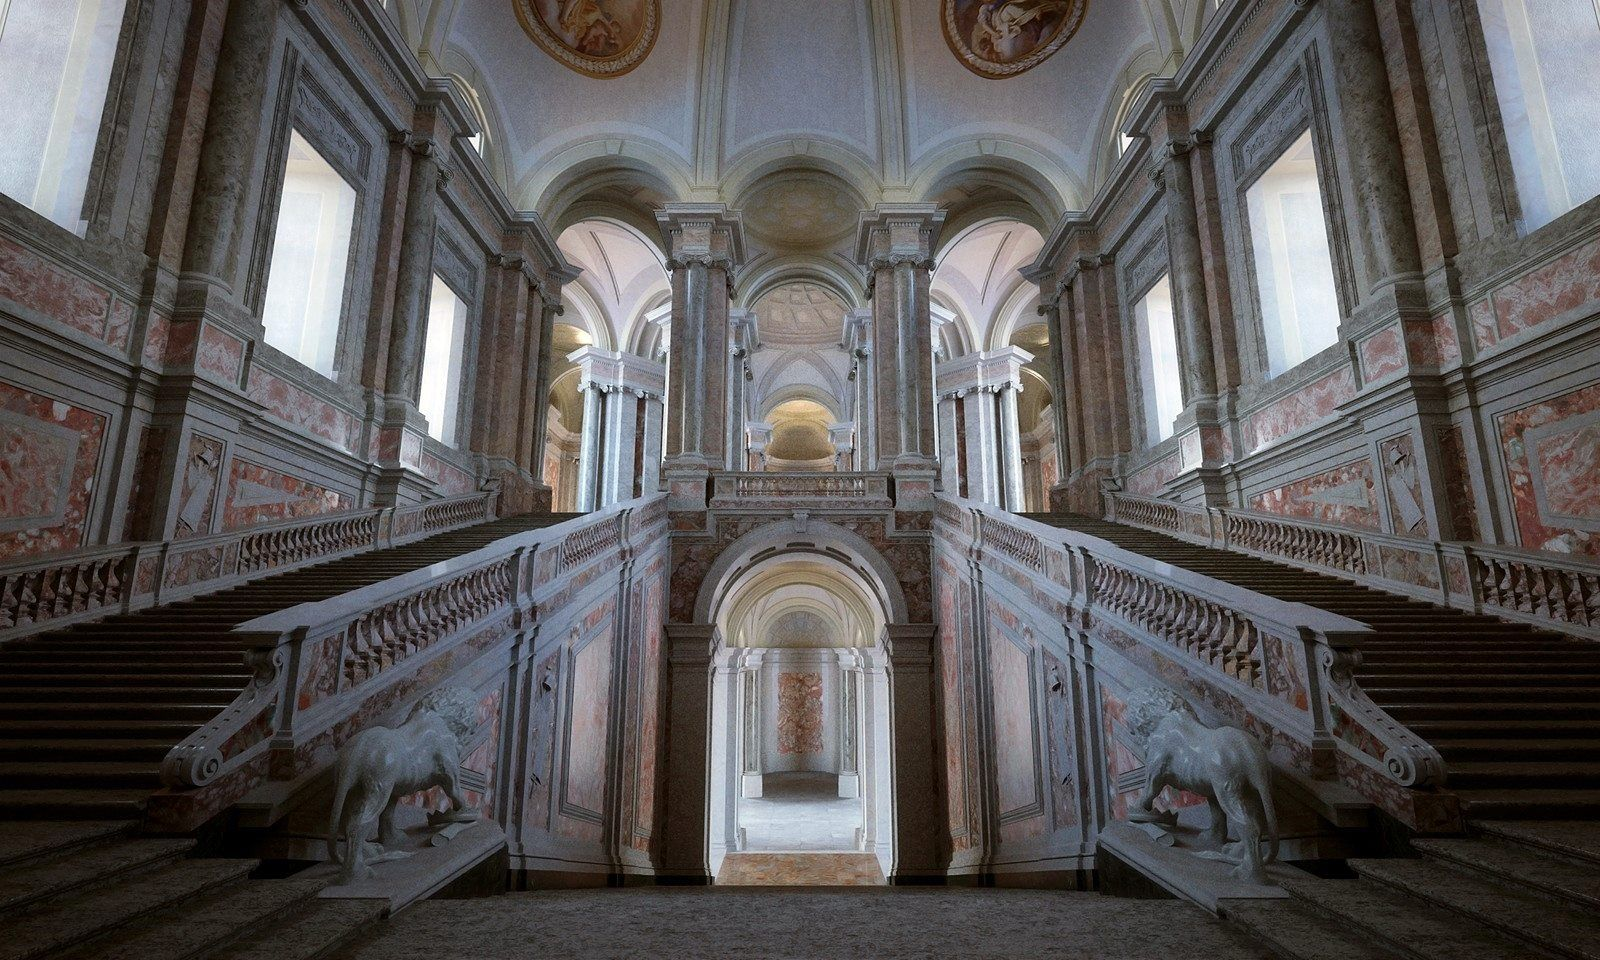 The royal palace caserta italy interior used for theed royal palace star wars episode i - Interior designer caserta ...